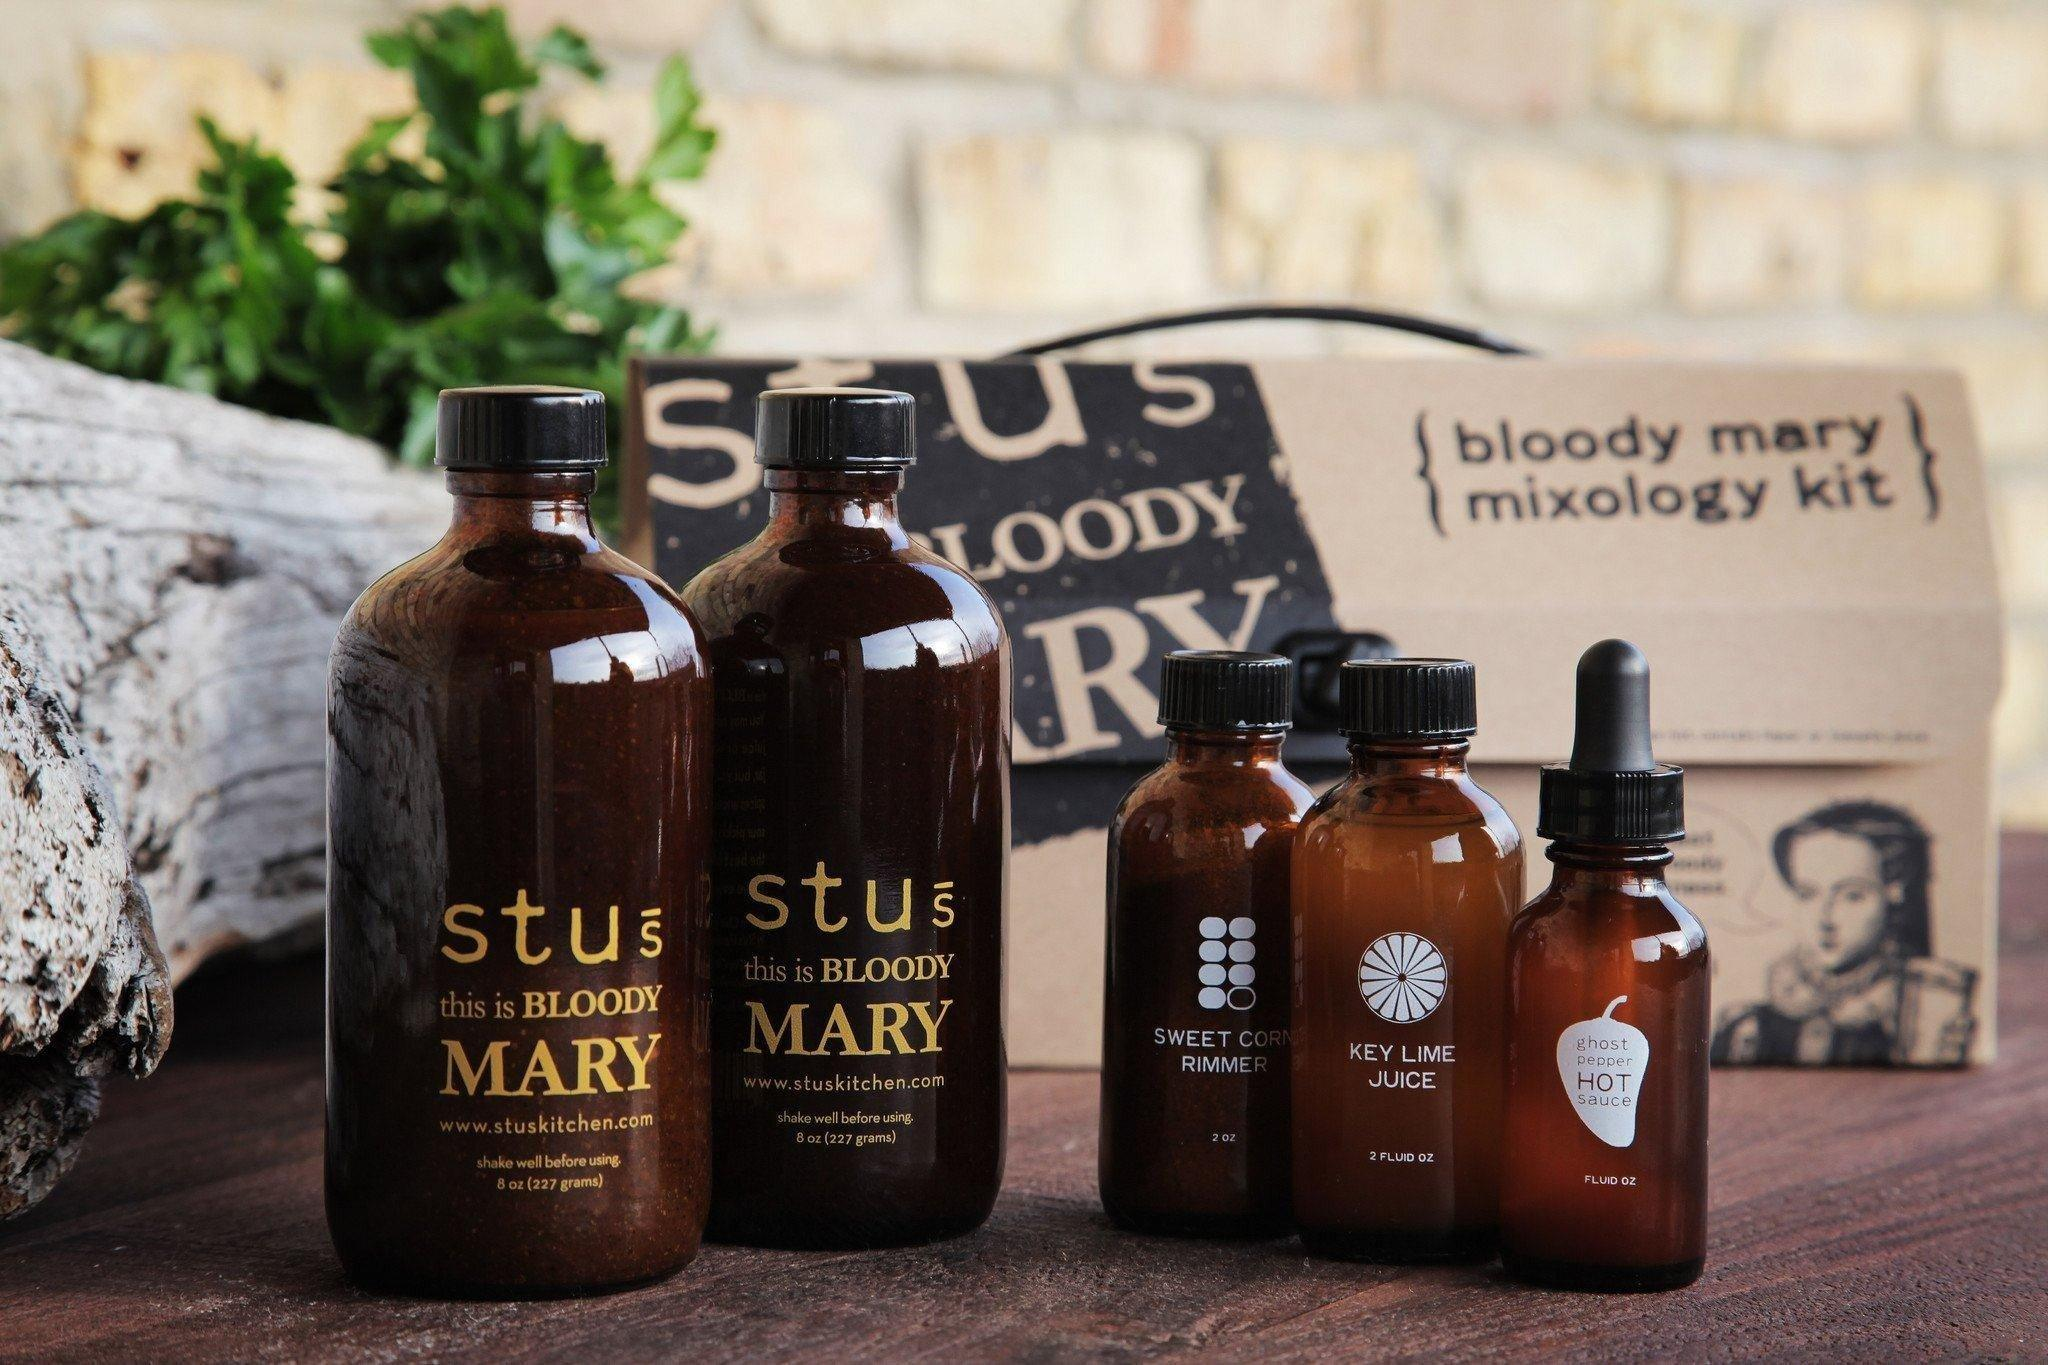 Bloody Mary Mix - Stu's Bloody Mary Mixology Kit